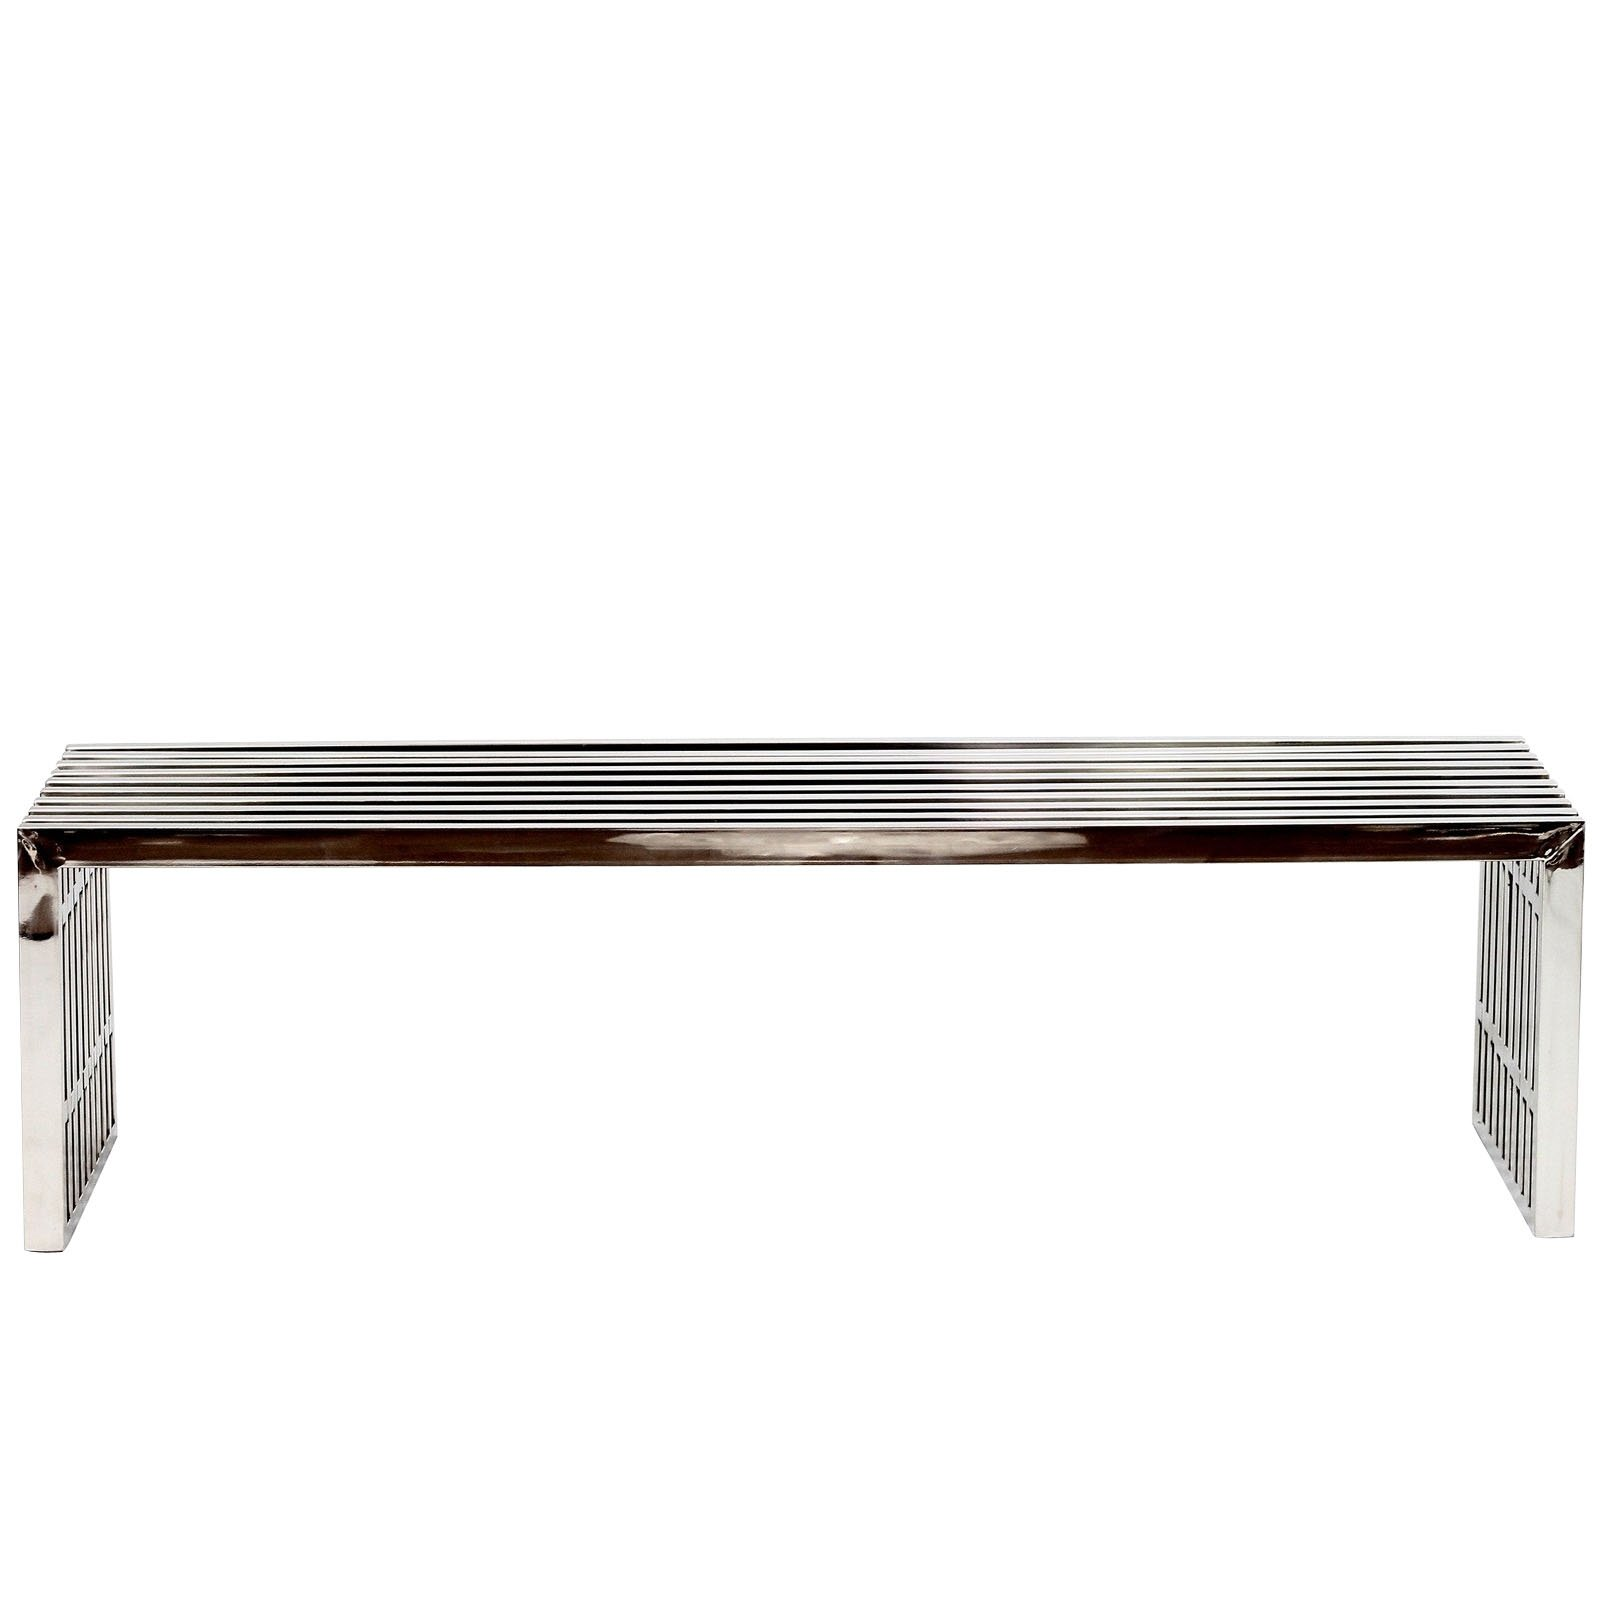 Modway Gridiron Contemporary Modern Large Stainless Steel Bench by Modway (Image #2)